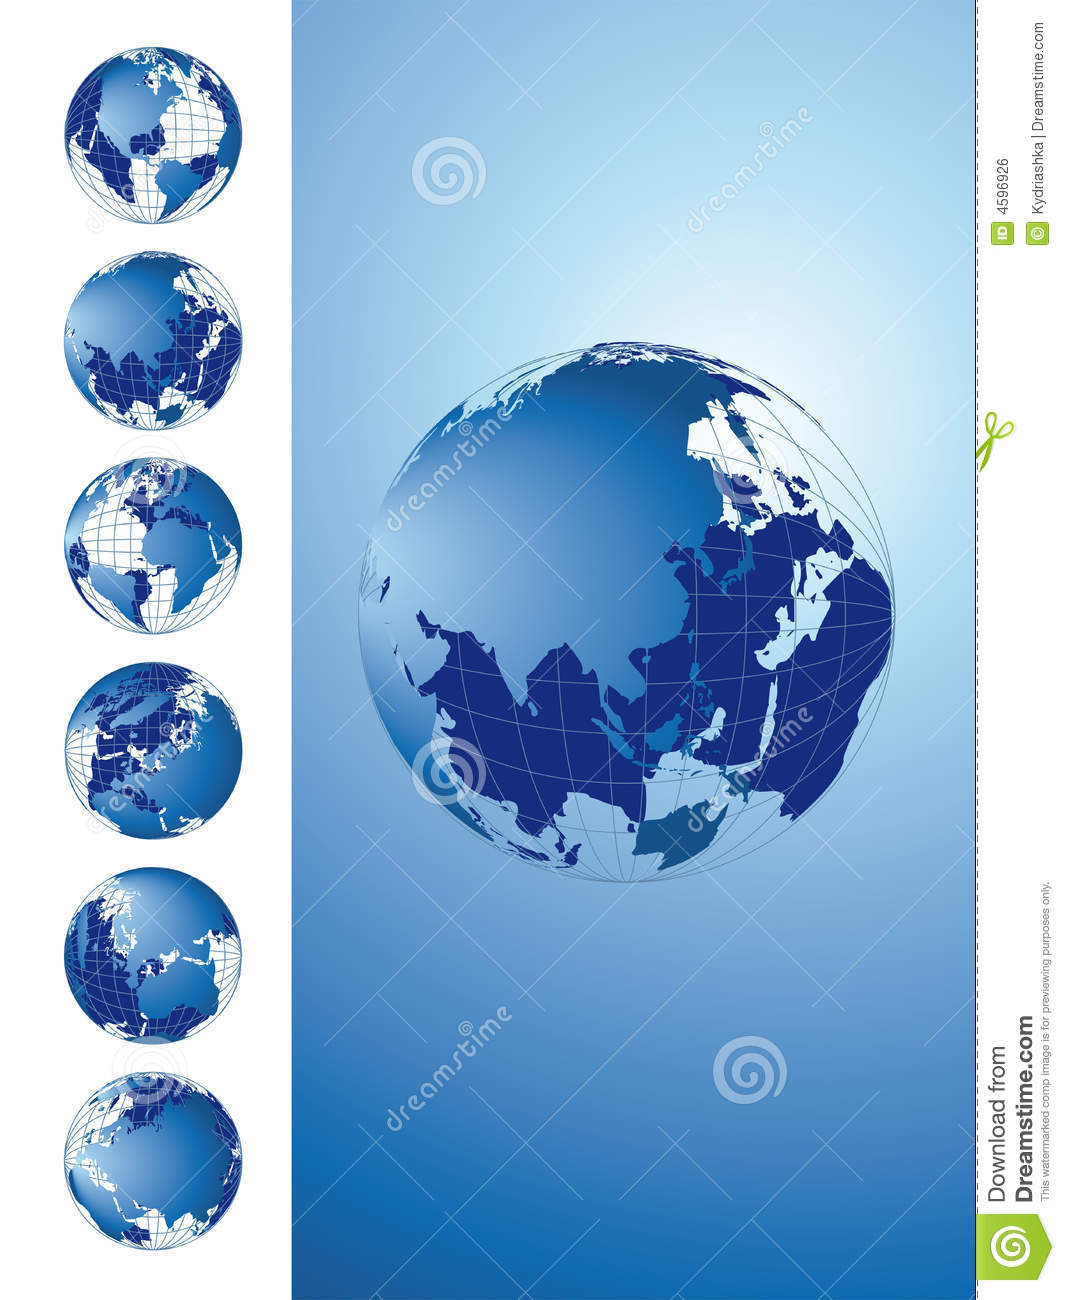 World map 3d globe series stock illustration illustration of world map 3d globe series gumiabroncs